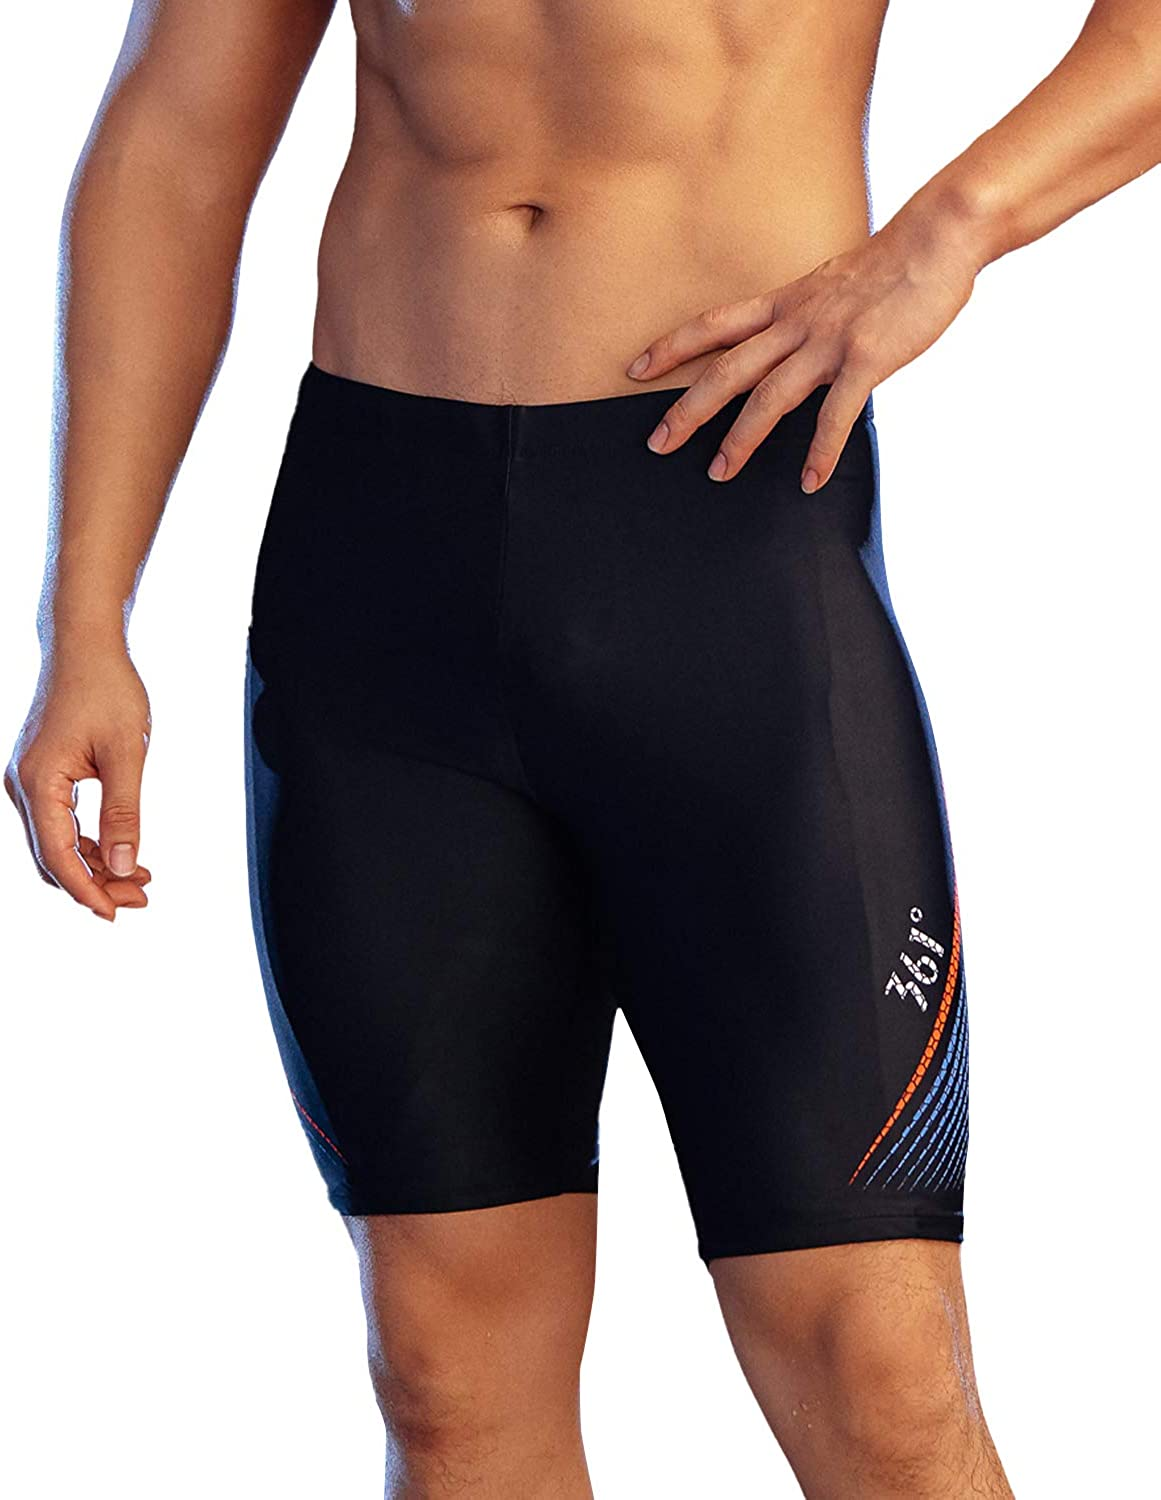 361º Chicago Mall Reservation Swim Jammers for Men Athle Resistant Boys Chlorine Tight